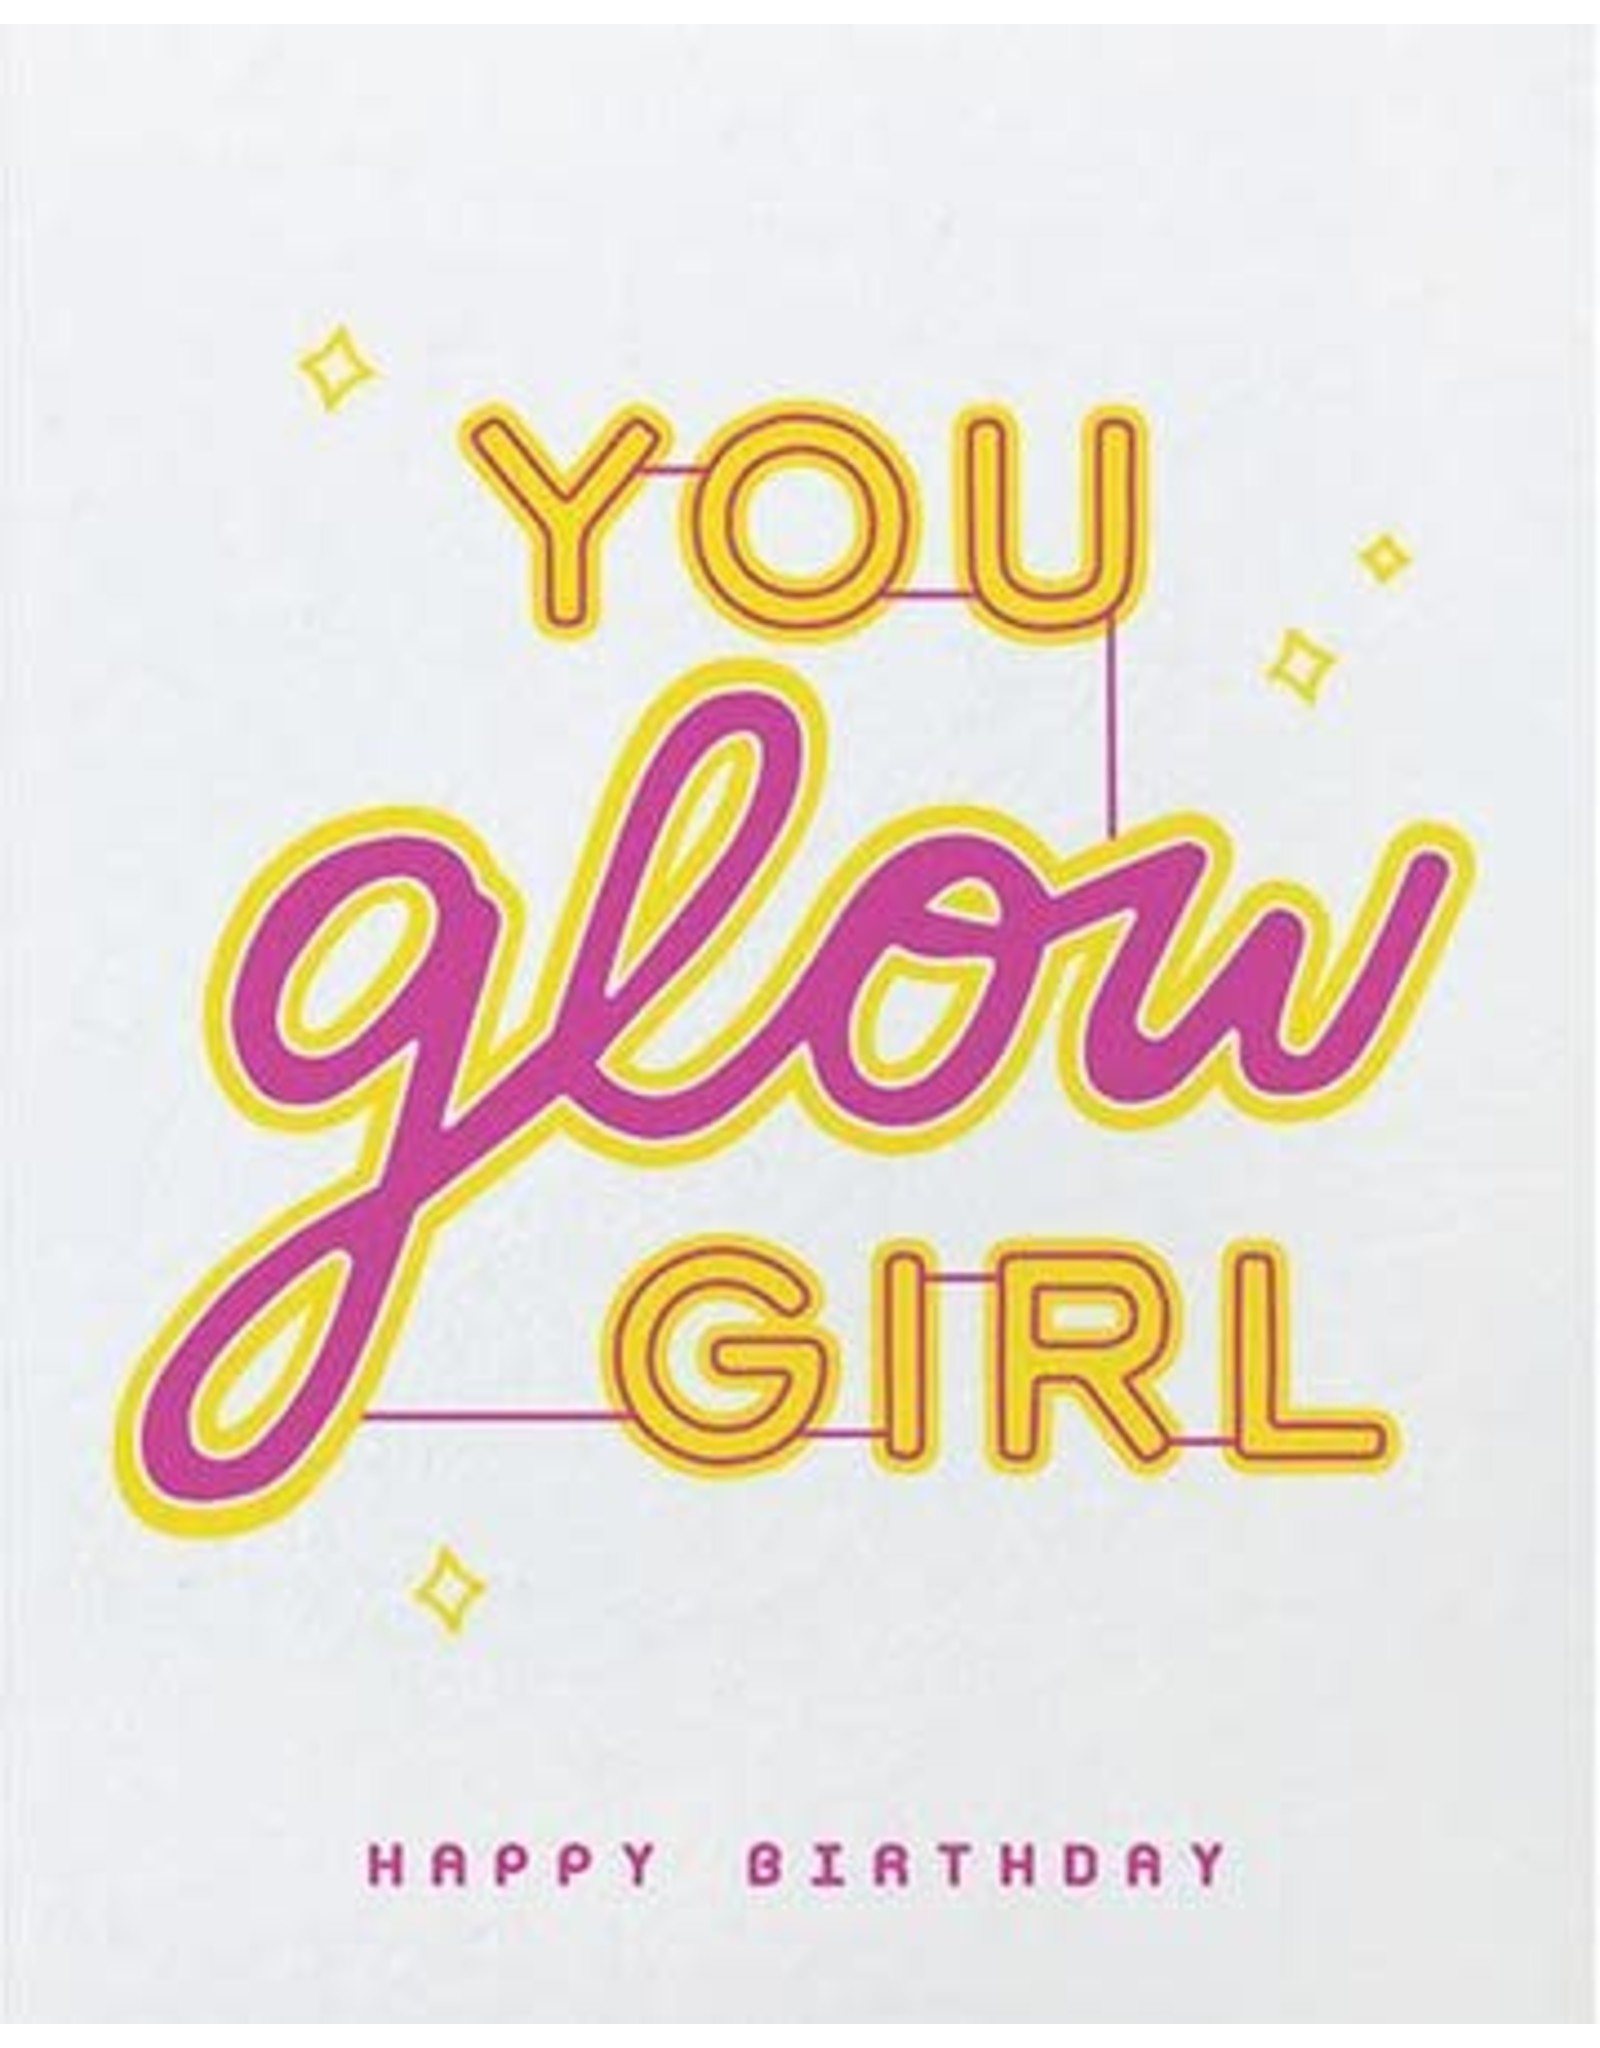 Good Paper You Glow Girl Birthday Greeting Card, Philippines